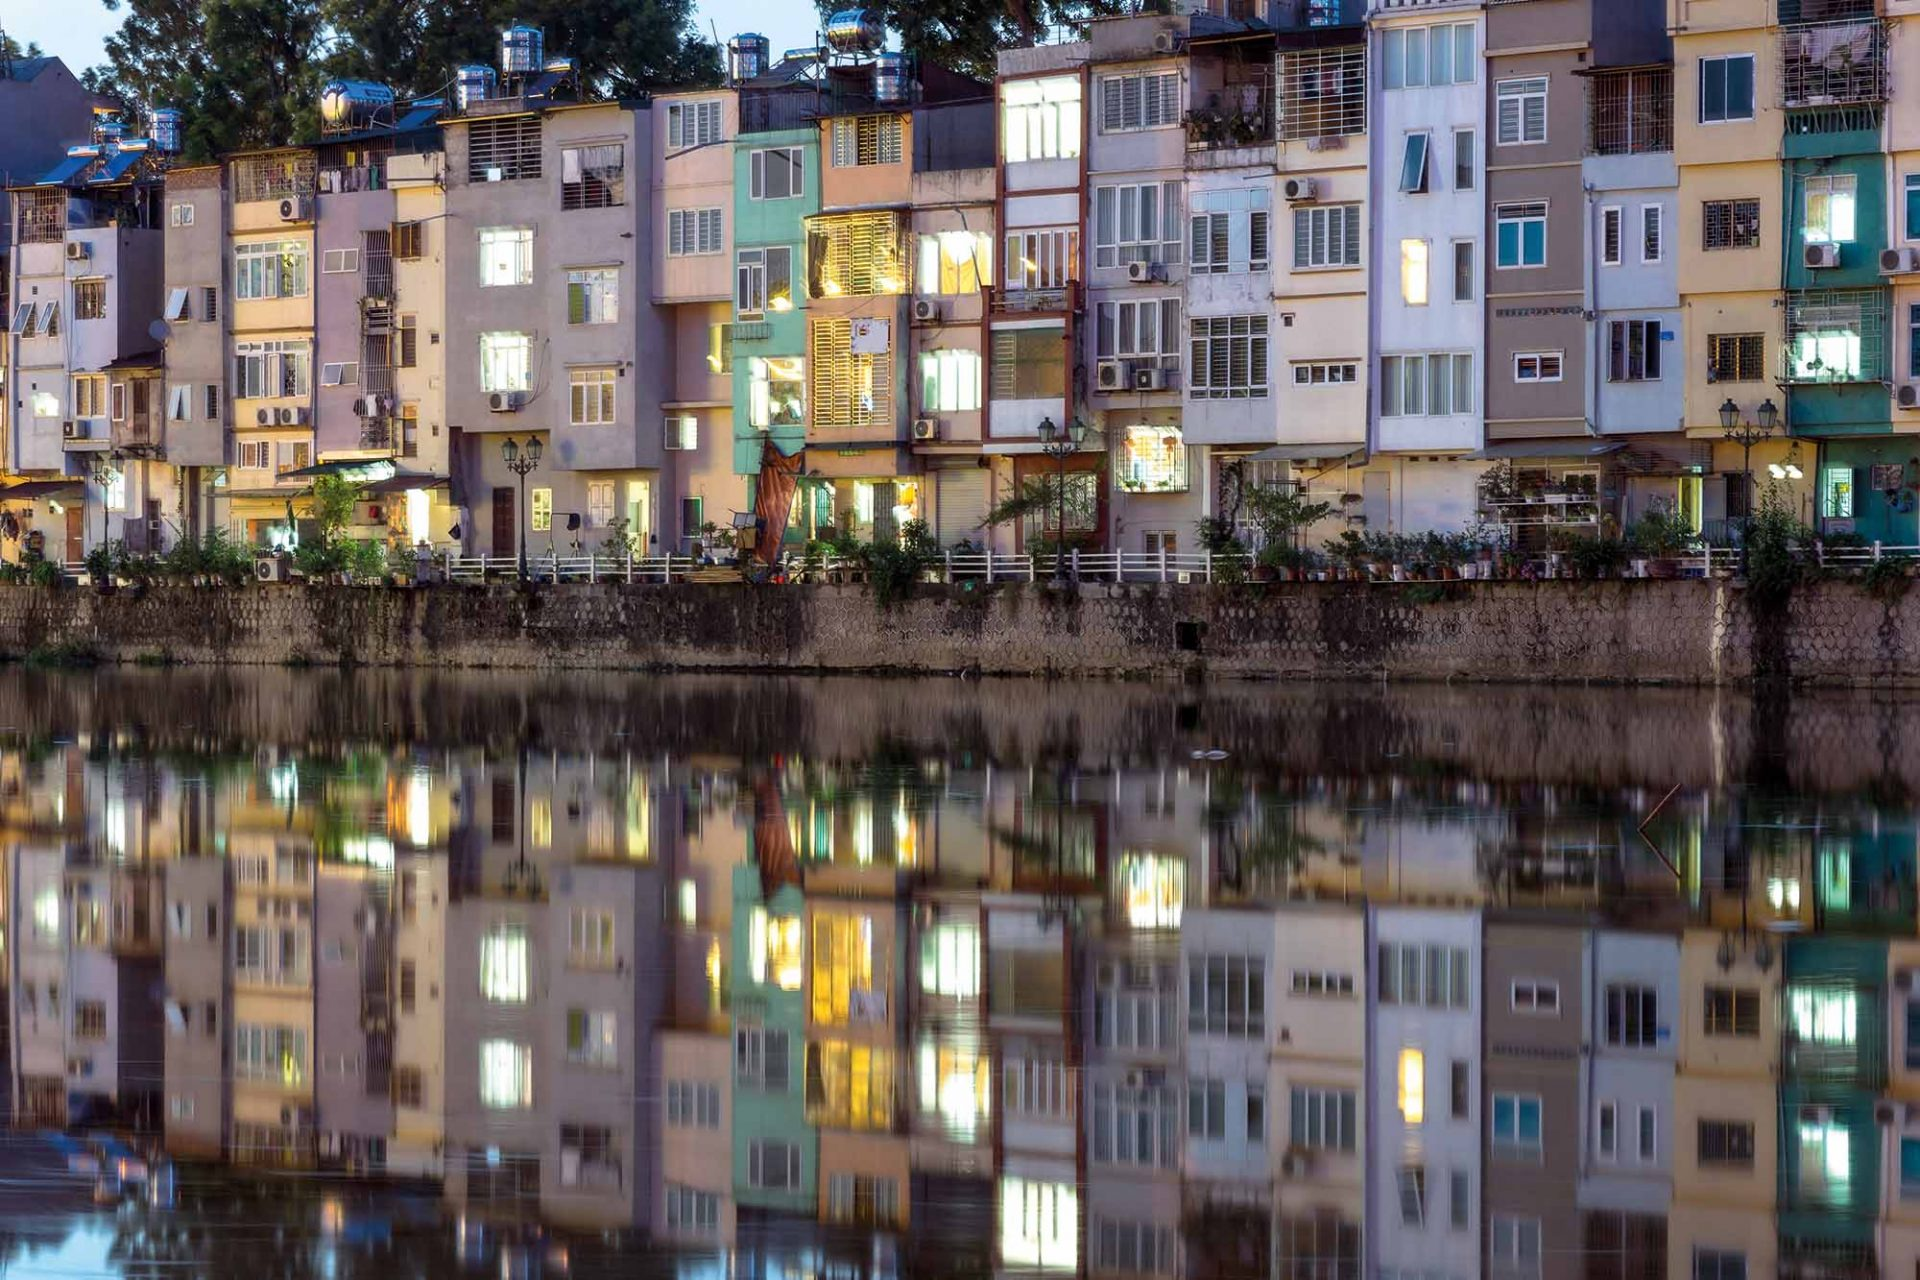 Resident Houses With Reflection On Lake In Hanoi, Vietnam